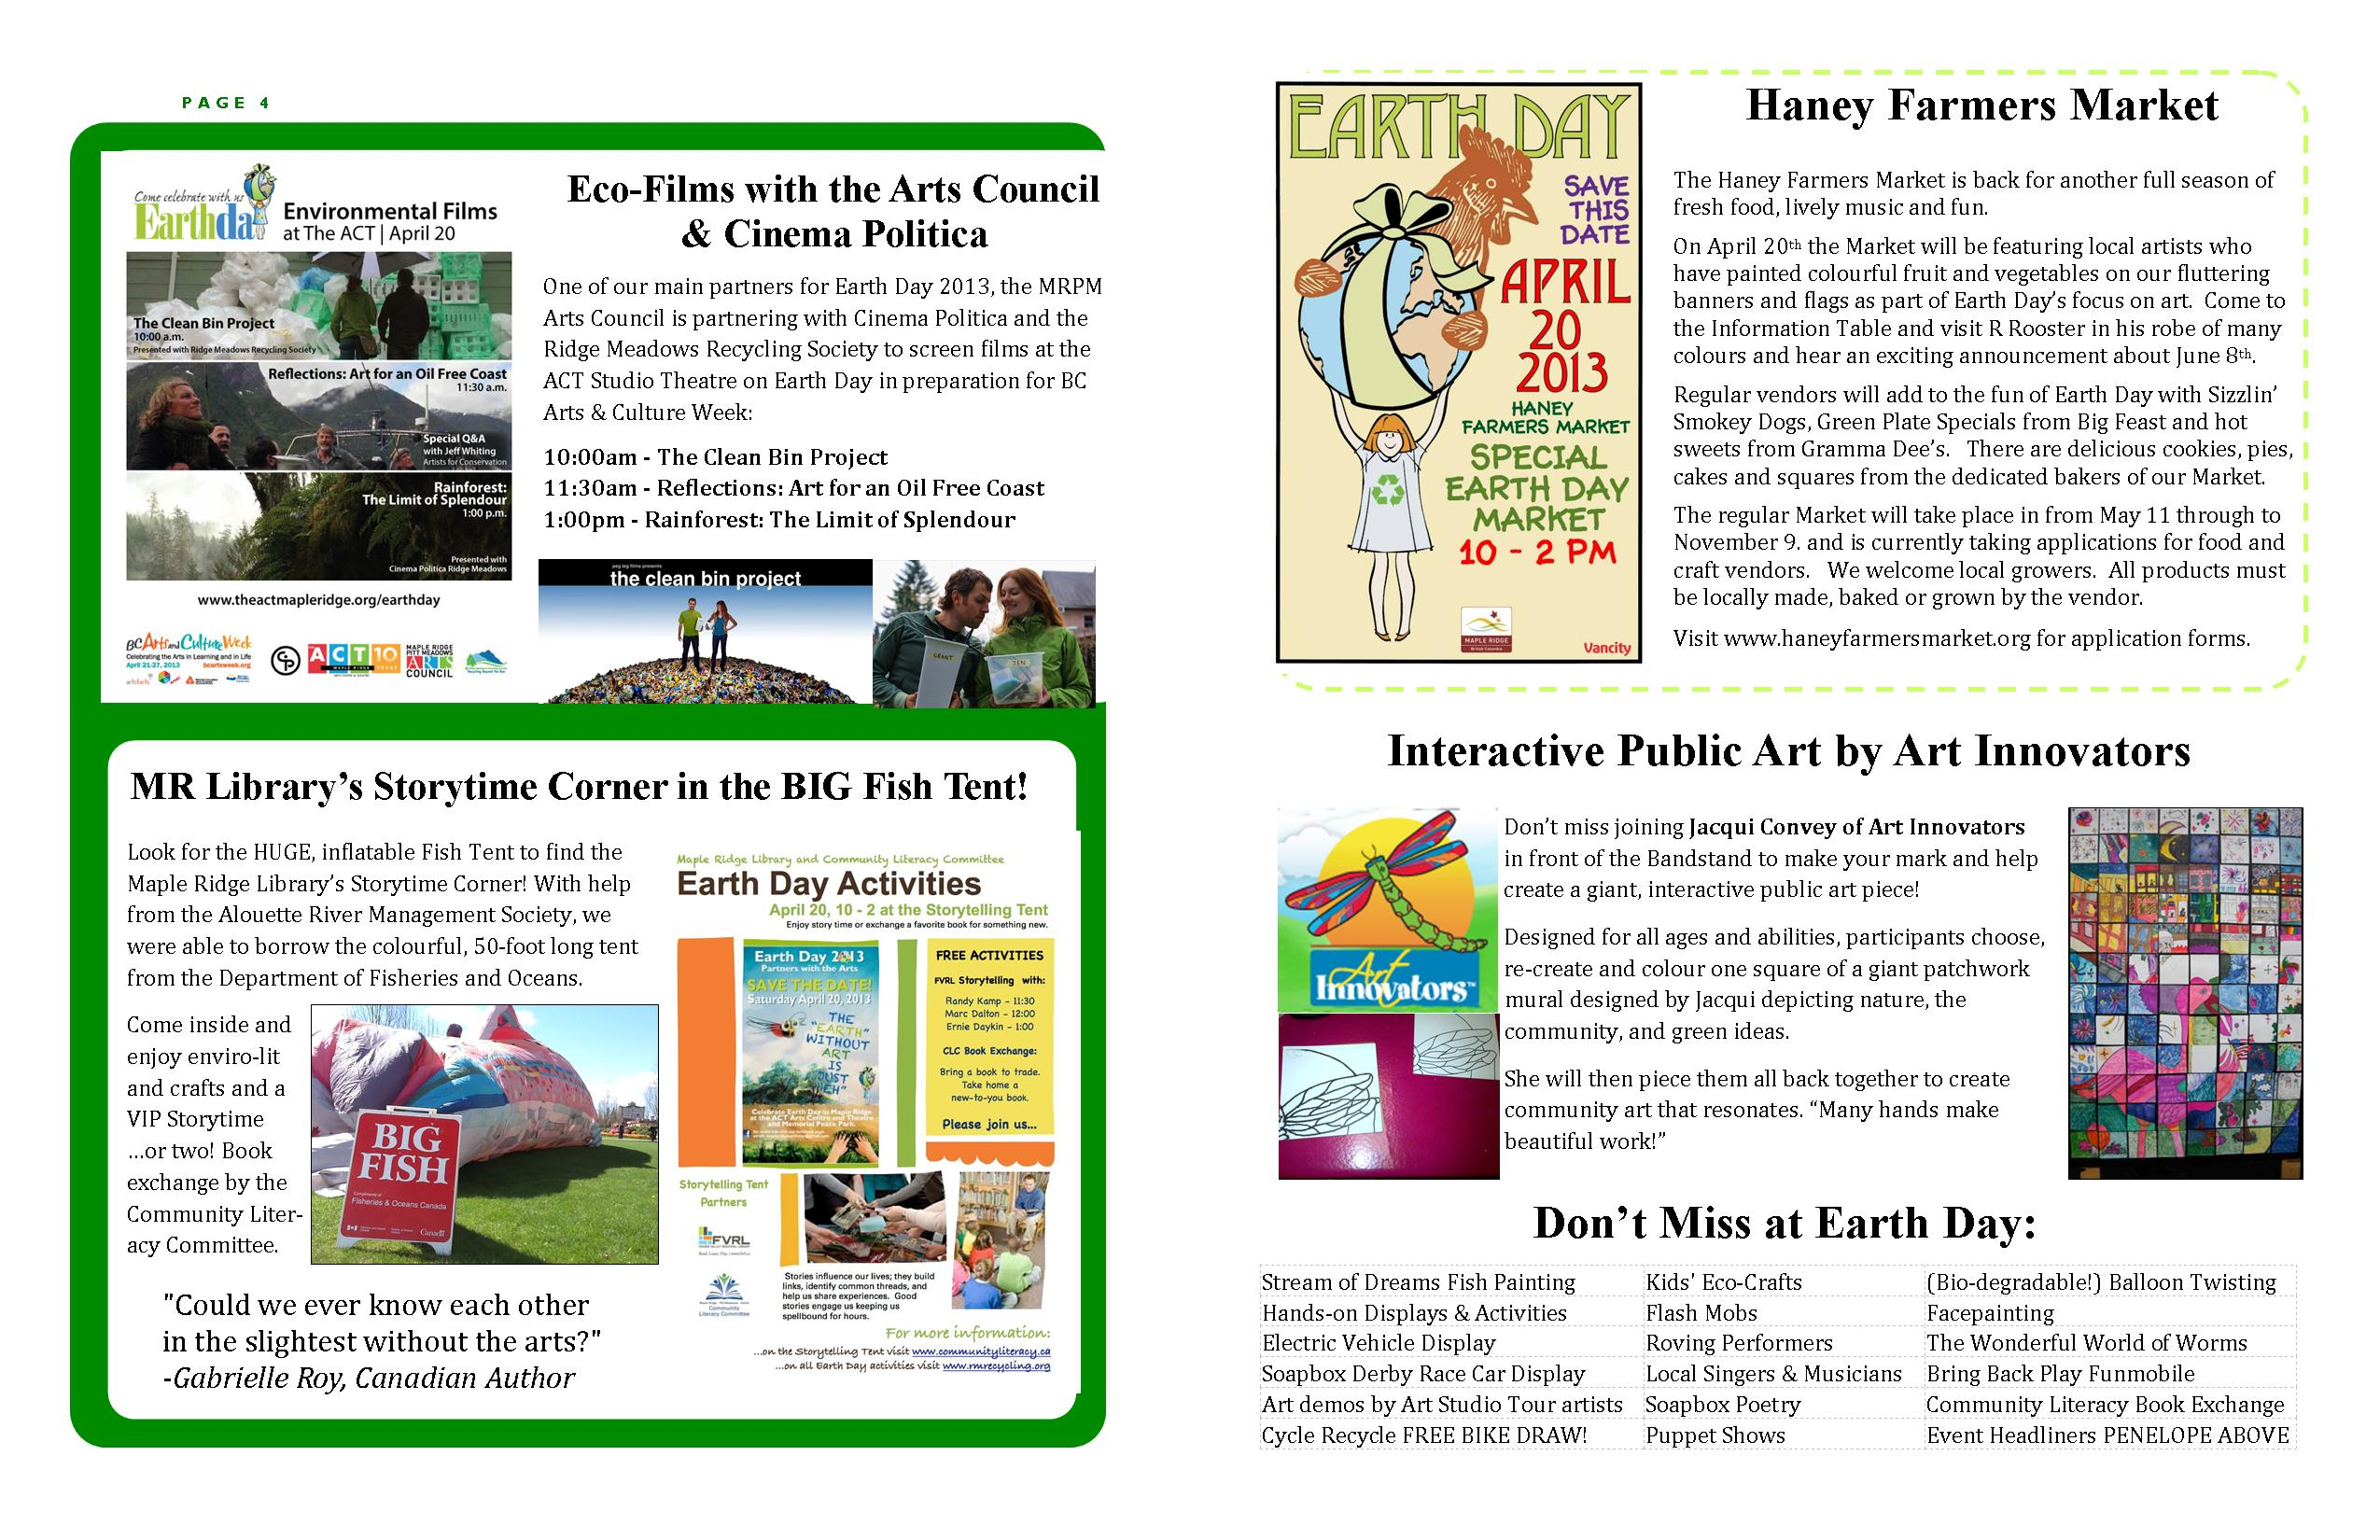 RMRS April, 2013 Newsletter - Pages 4-5